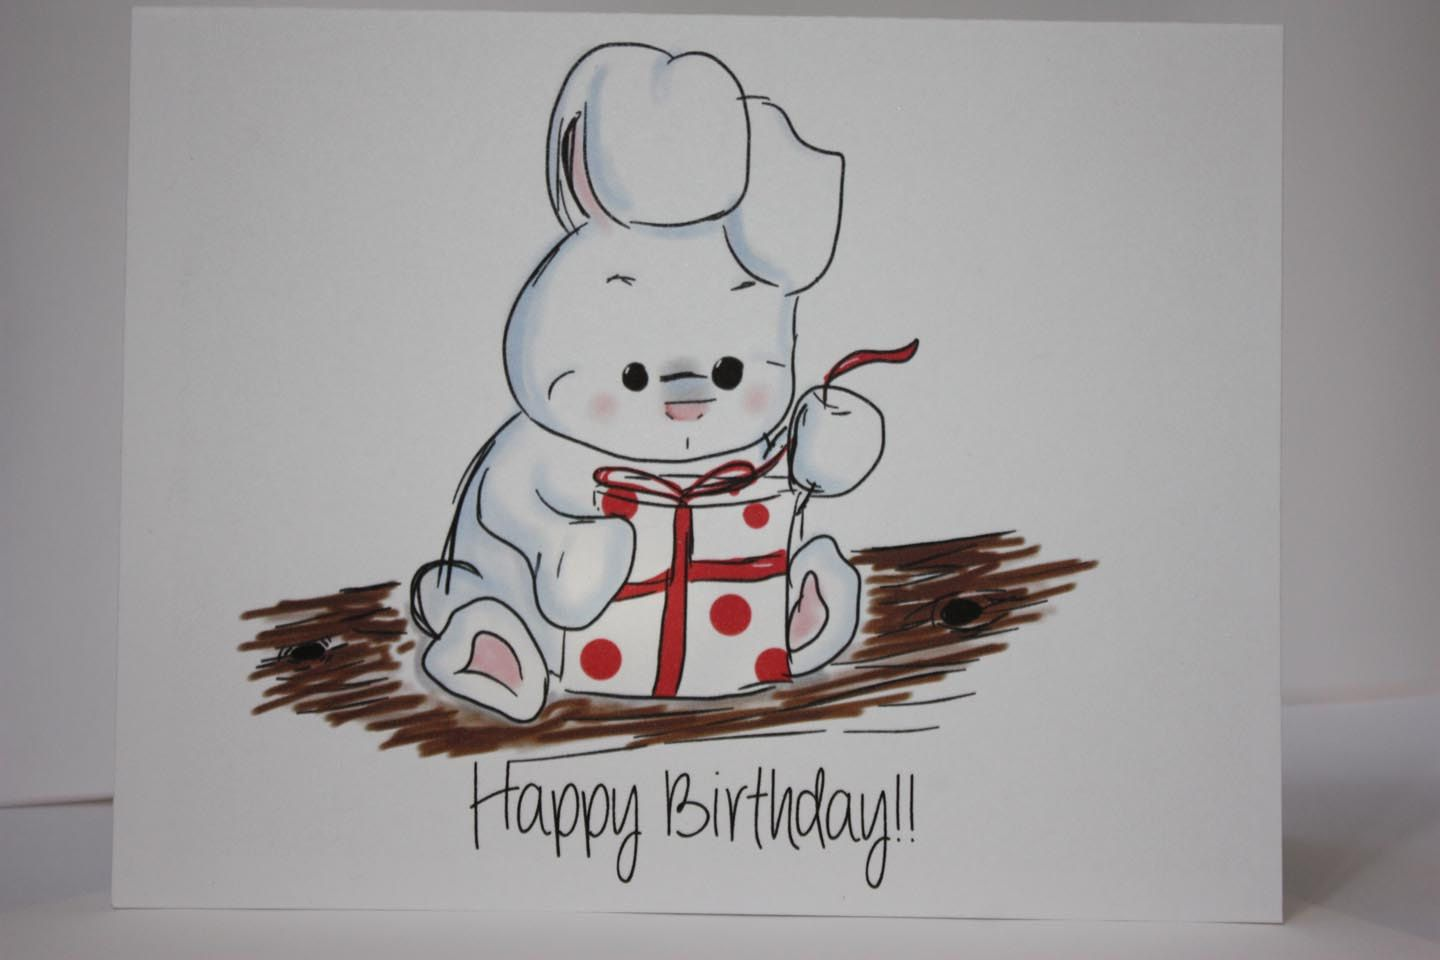 Used for atlantas 13th batman pinterest cards rabbit birthday card bunny rabbit birthdaycard white rabbit drawing card made on reycled paper comes with envelope and seal bookmarktalkfo Choice Image